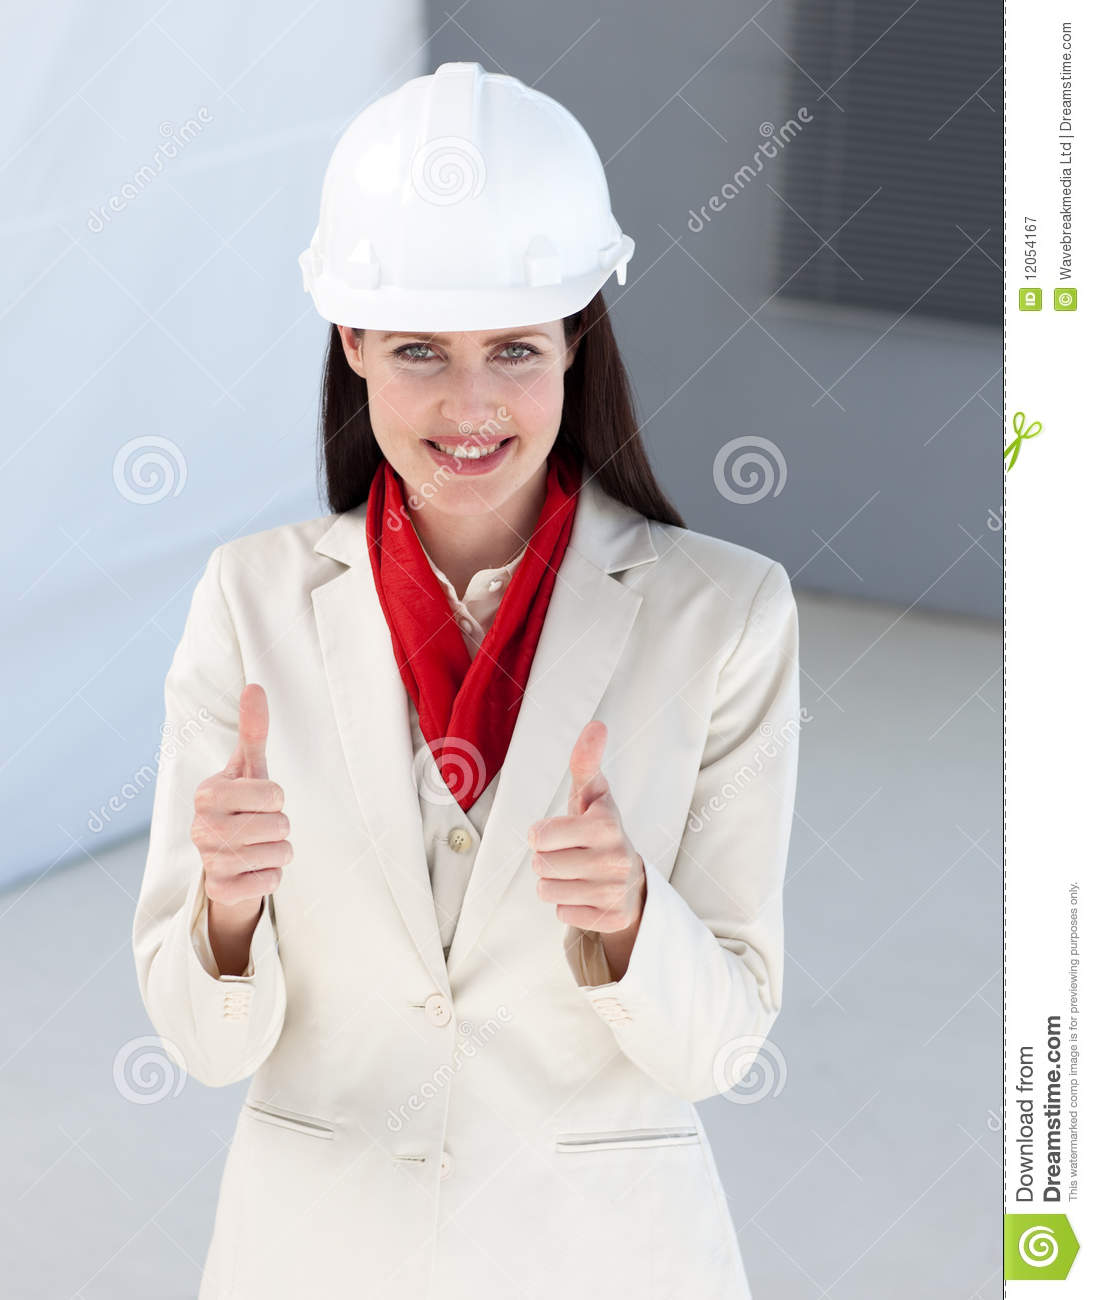 Close Up Of A Female Architect With Thumbs Up Royalty Free